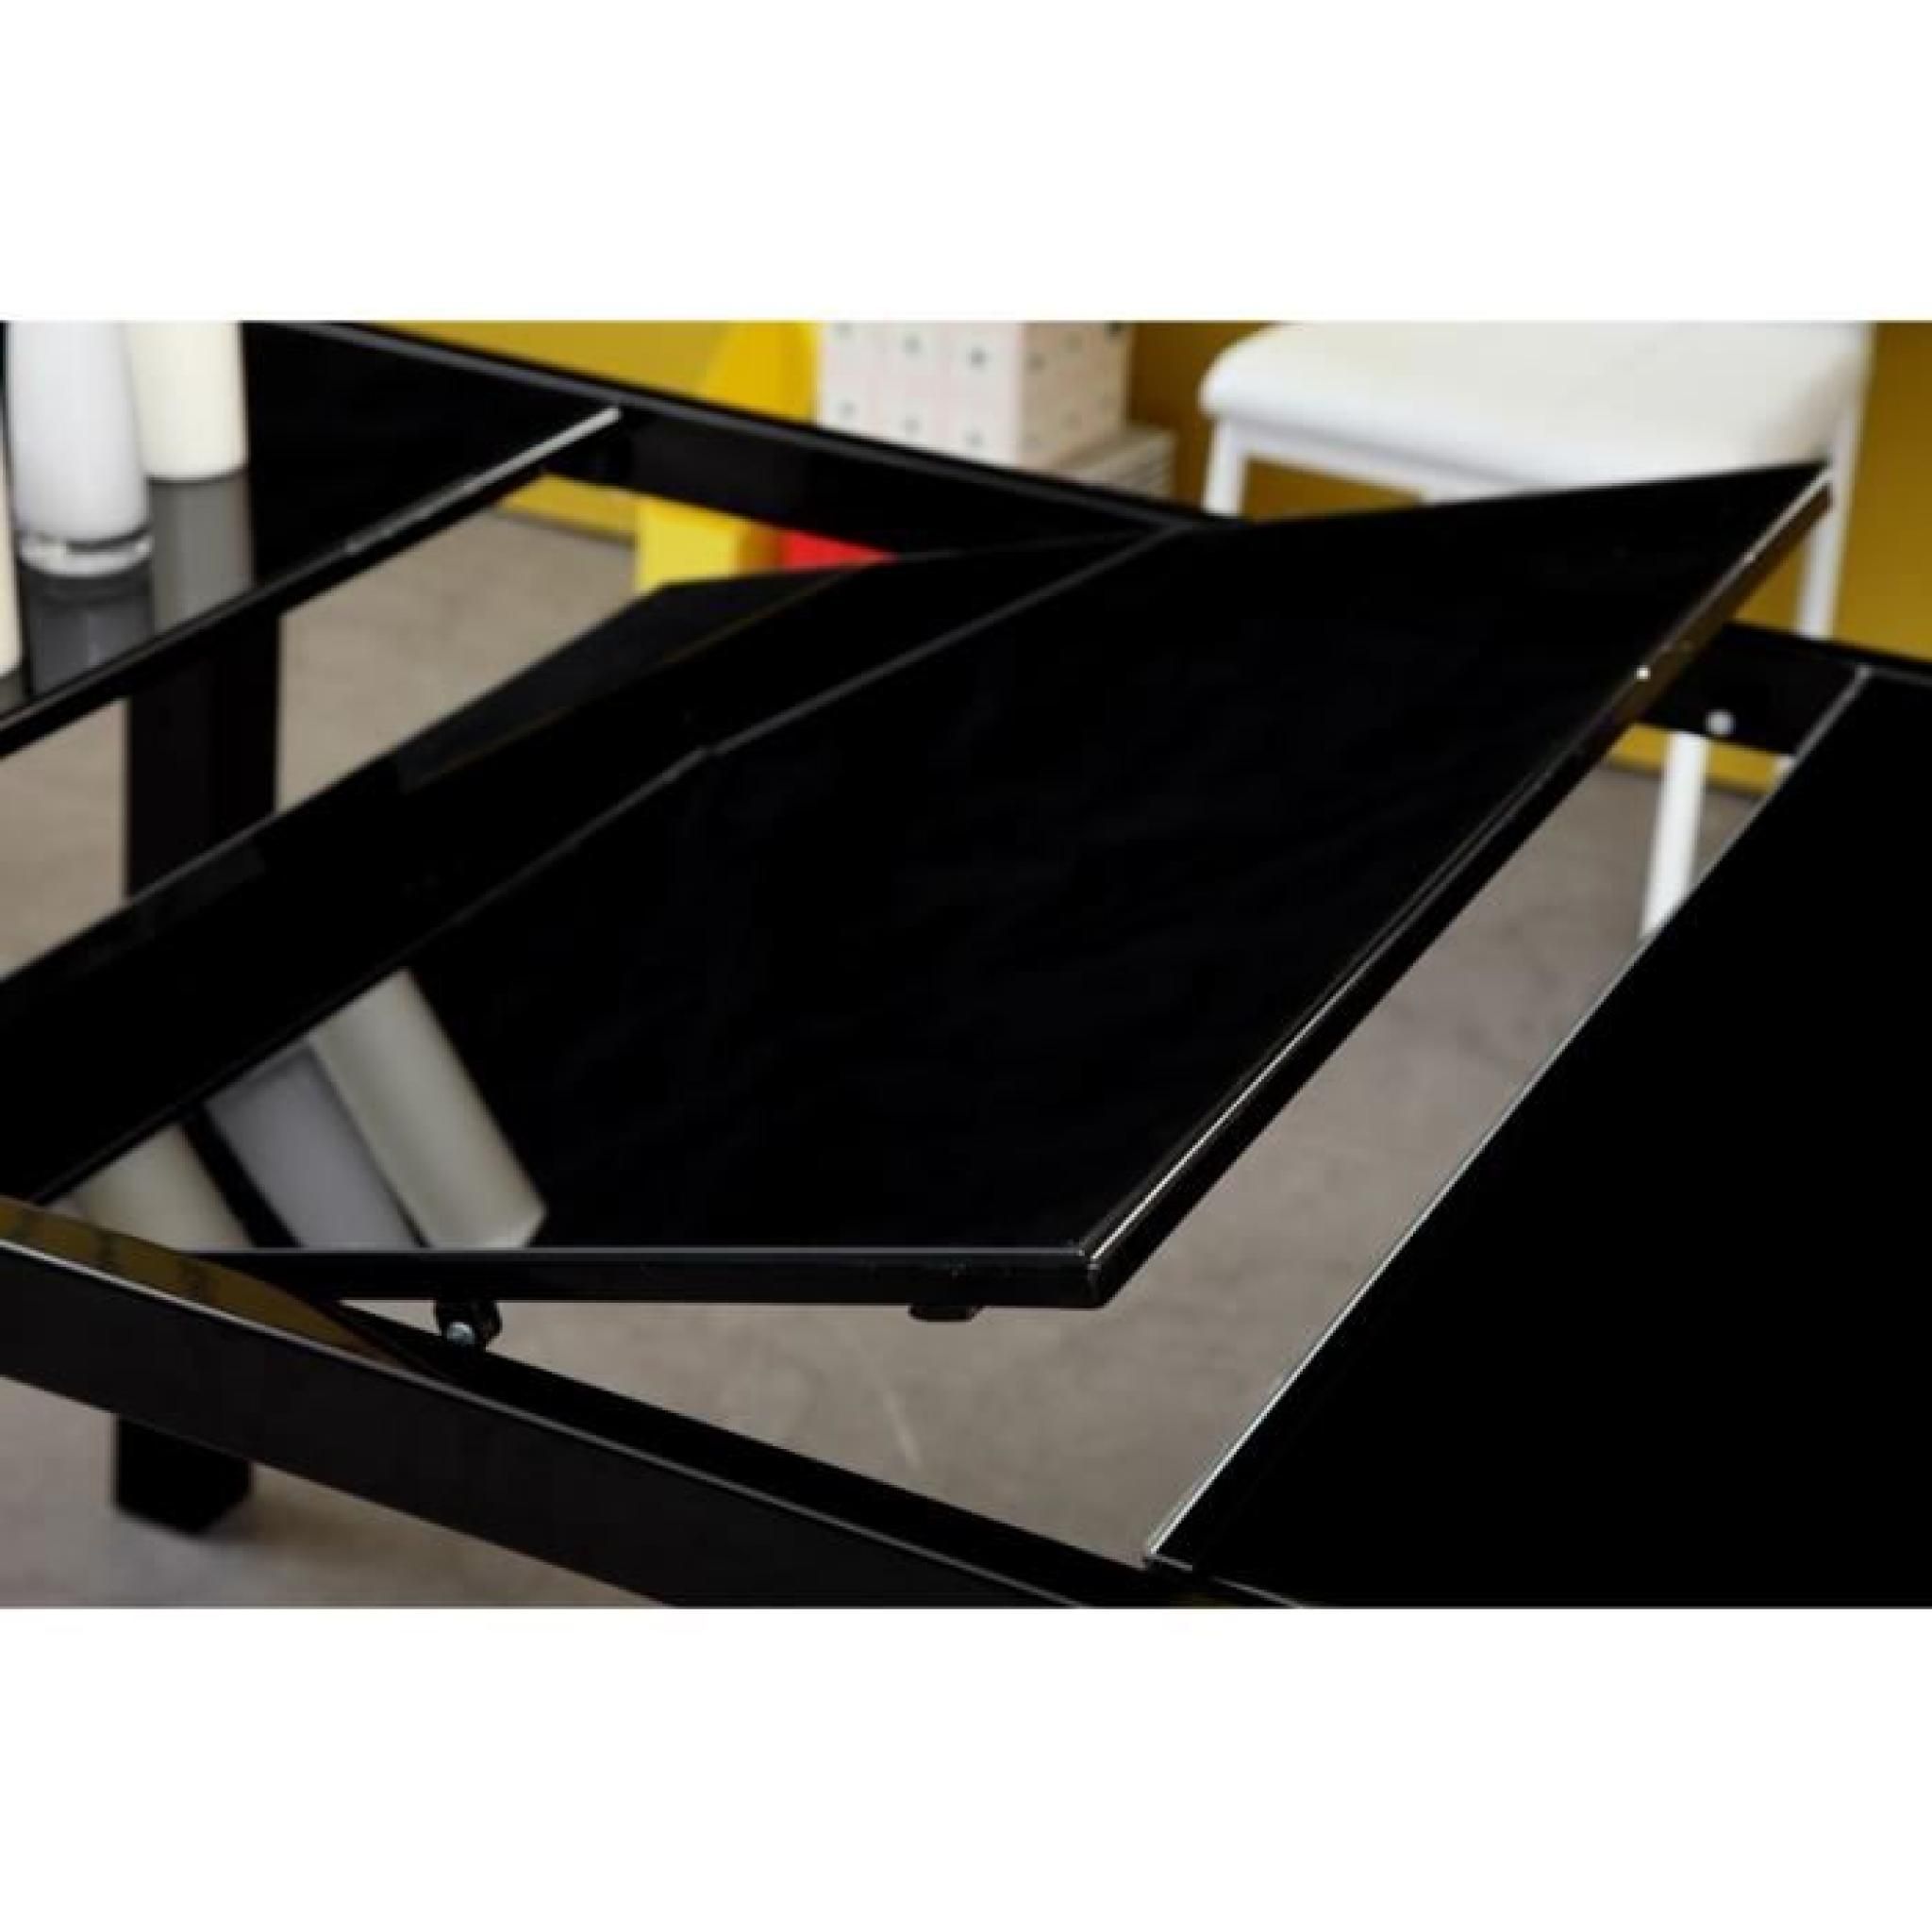 Emejing table a manger verre noire images awesome - Table a manger design extensible ...